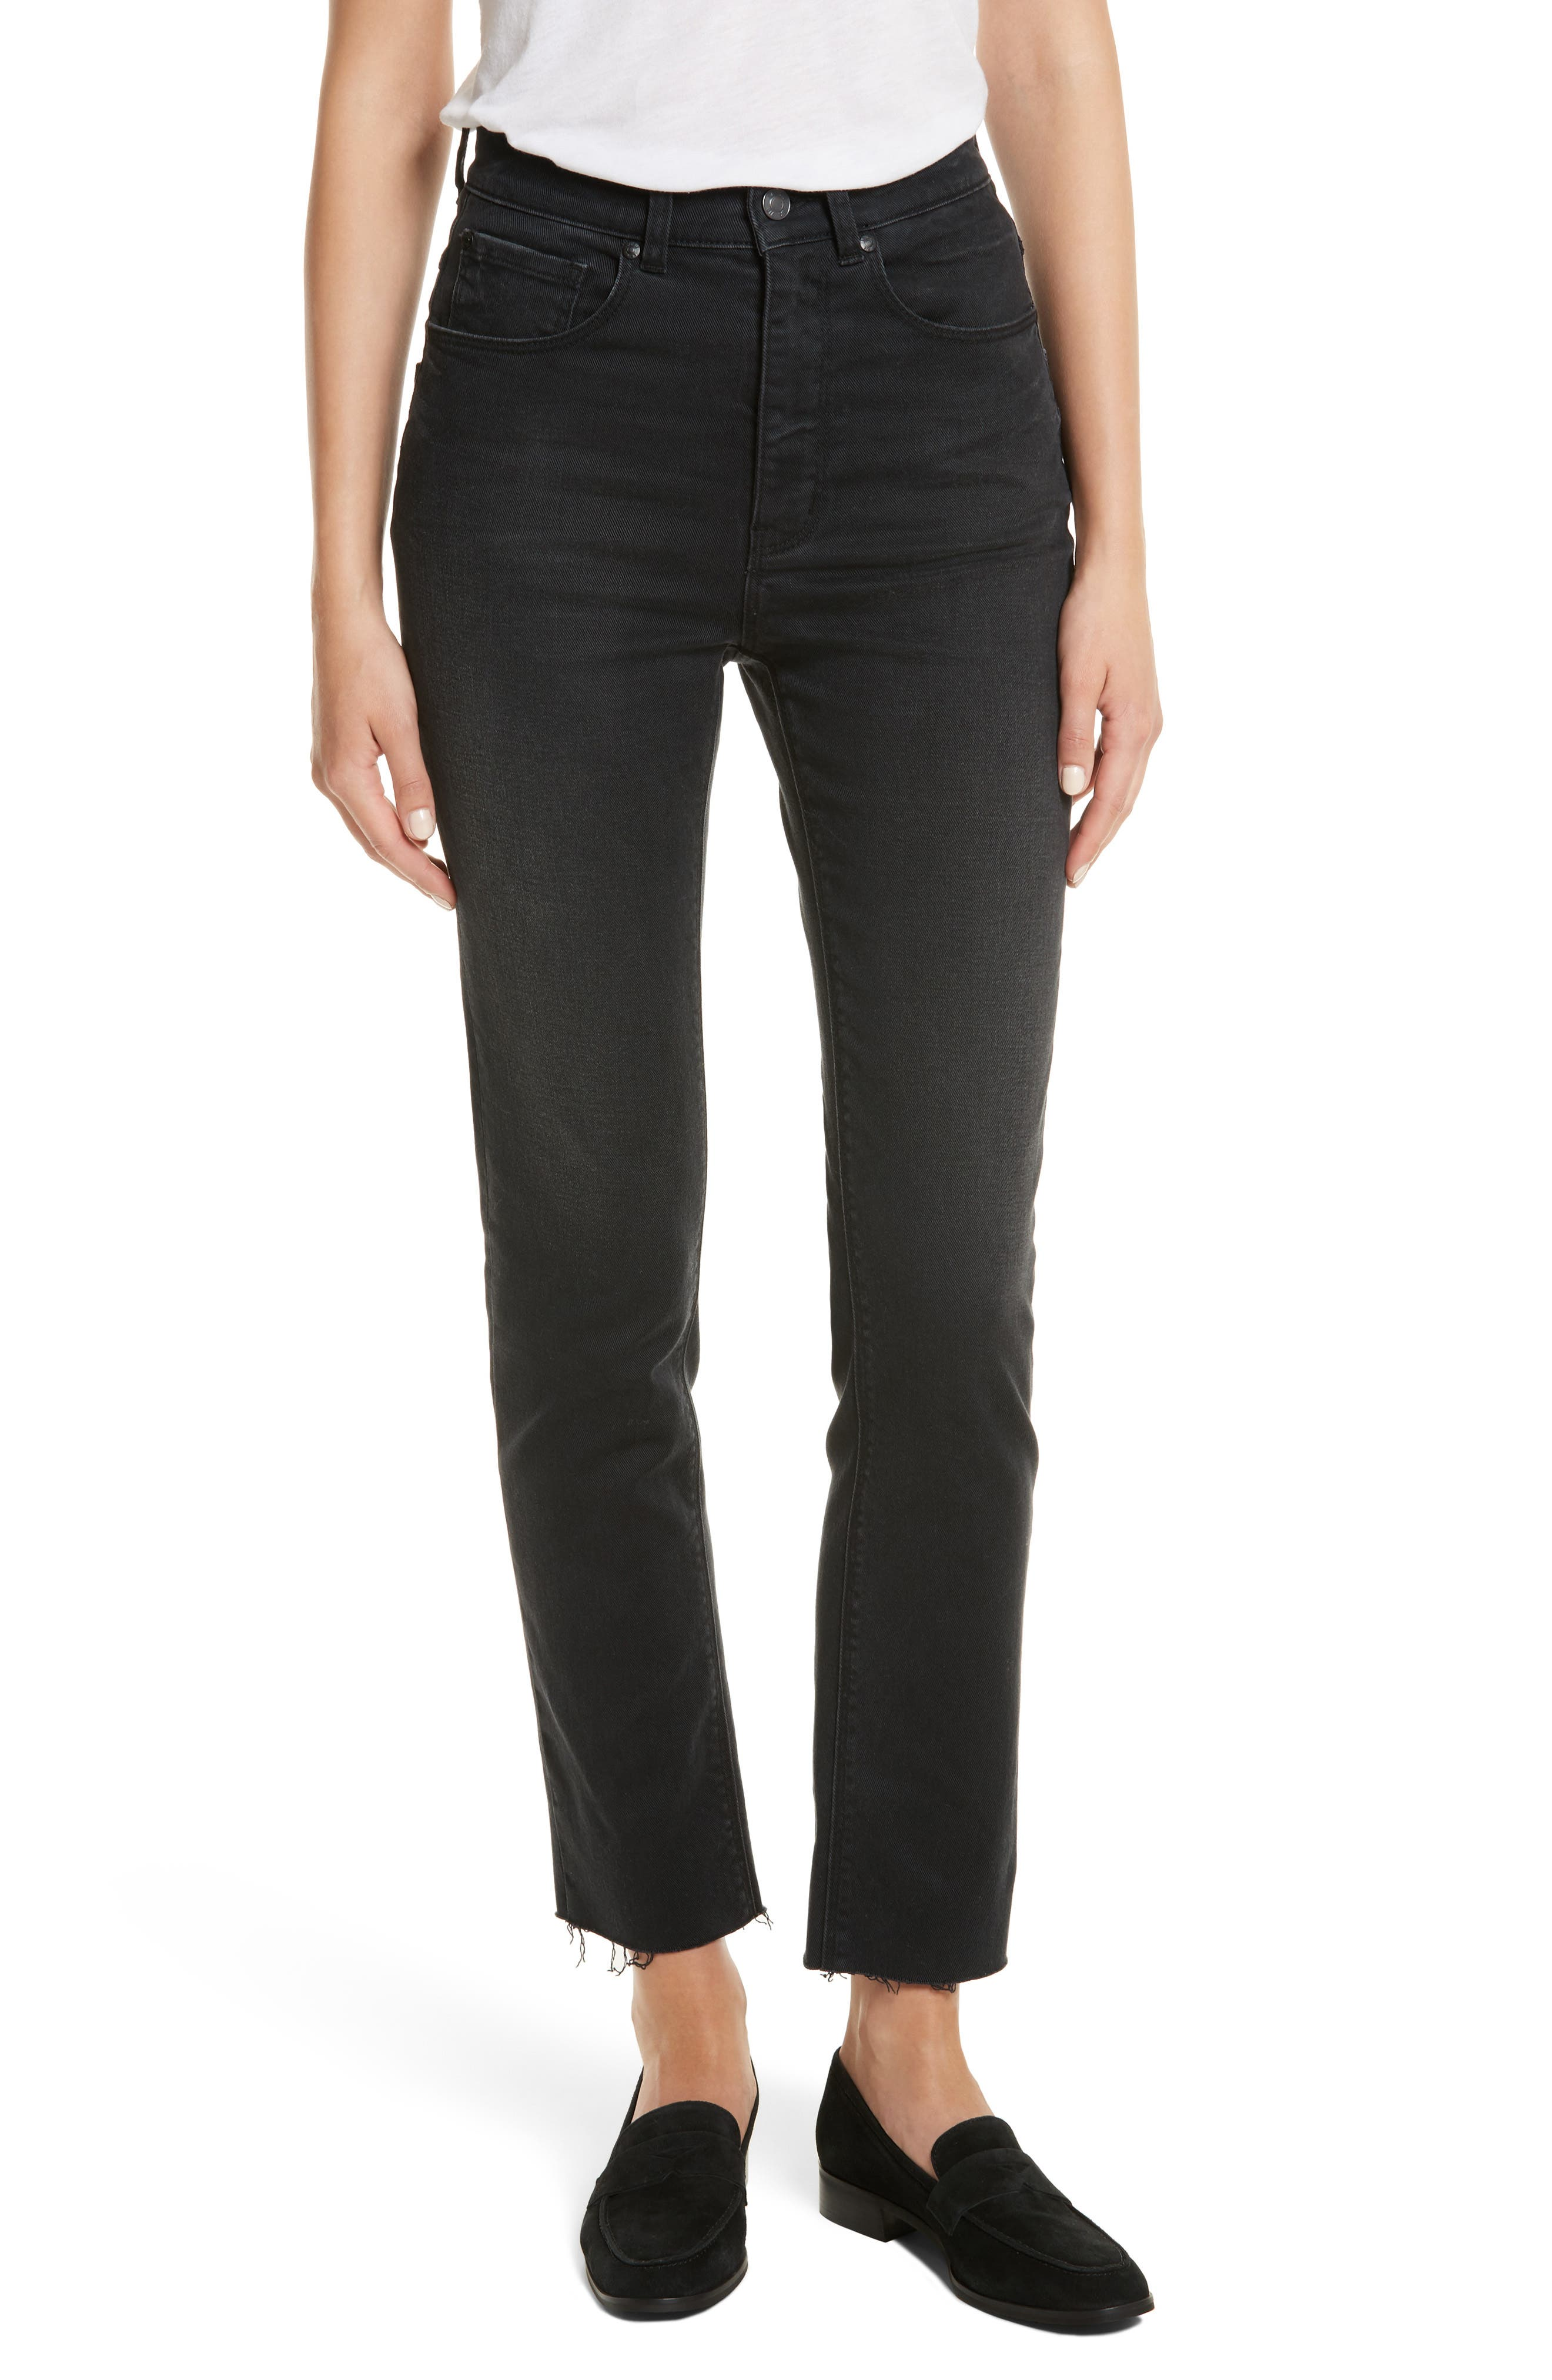 Rebecca Taylor Ines Crop High Waist Skinny Jeans (Charcoal)